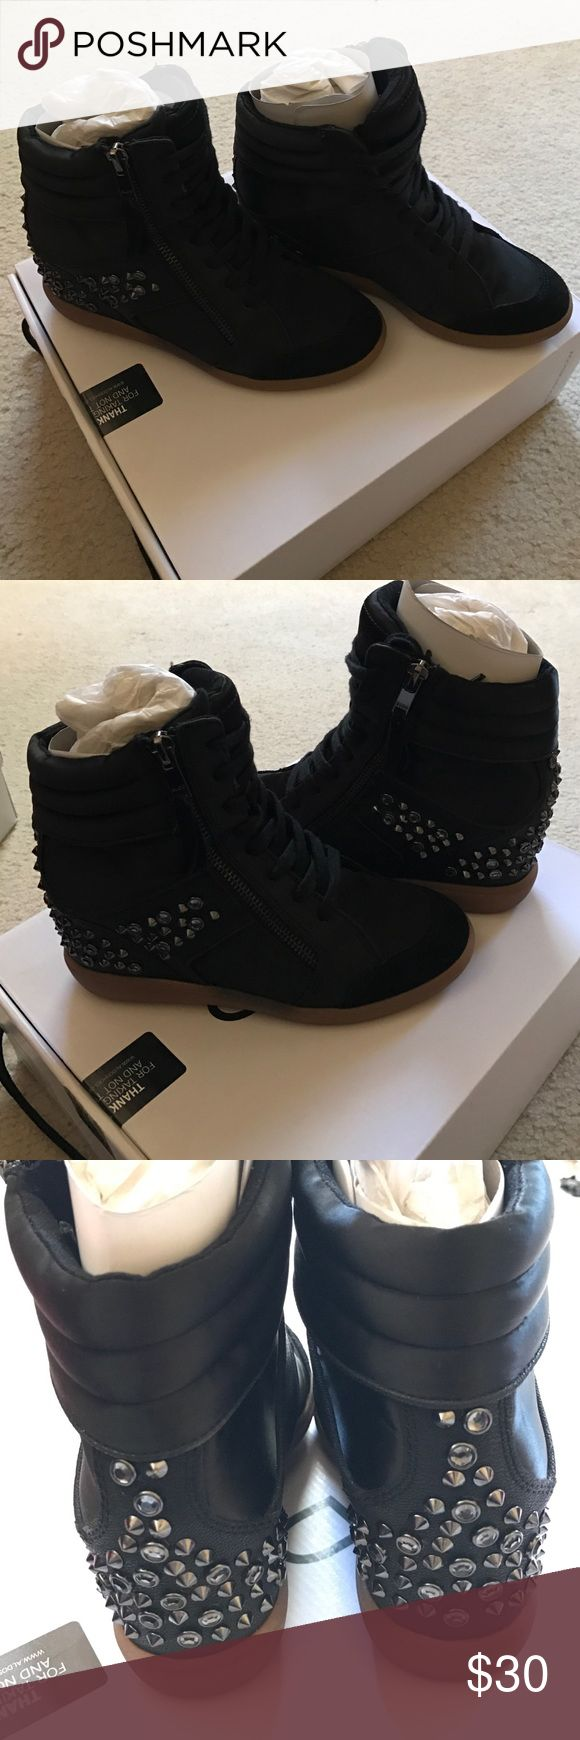 Black high top studded sneakers Black high top studded sneakers. New condition Aldo Shoes Sneakers